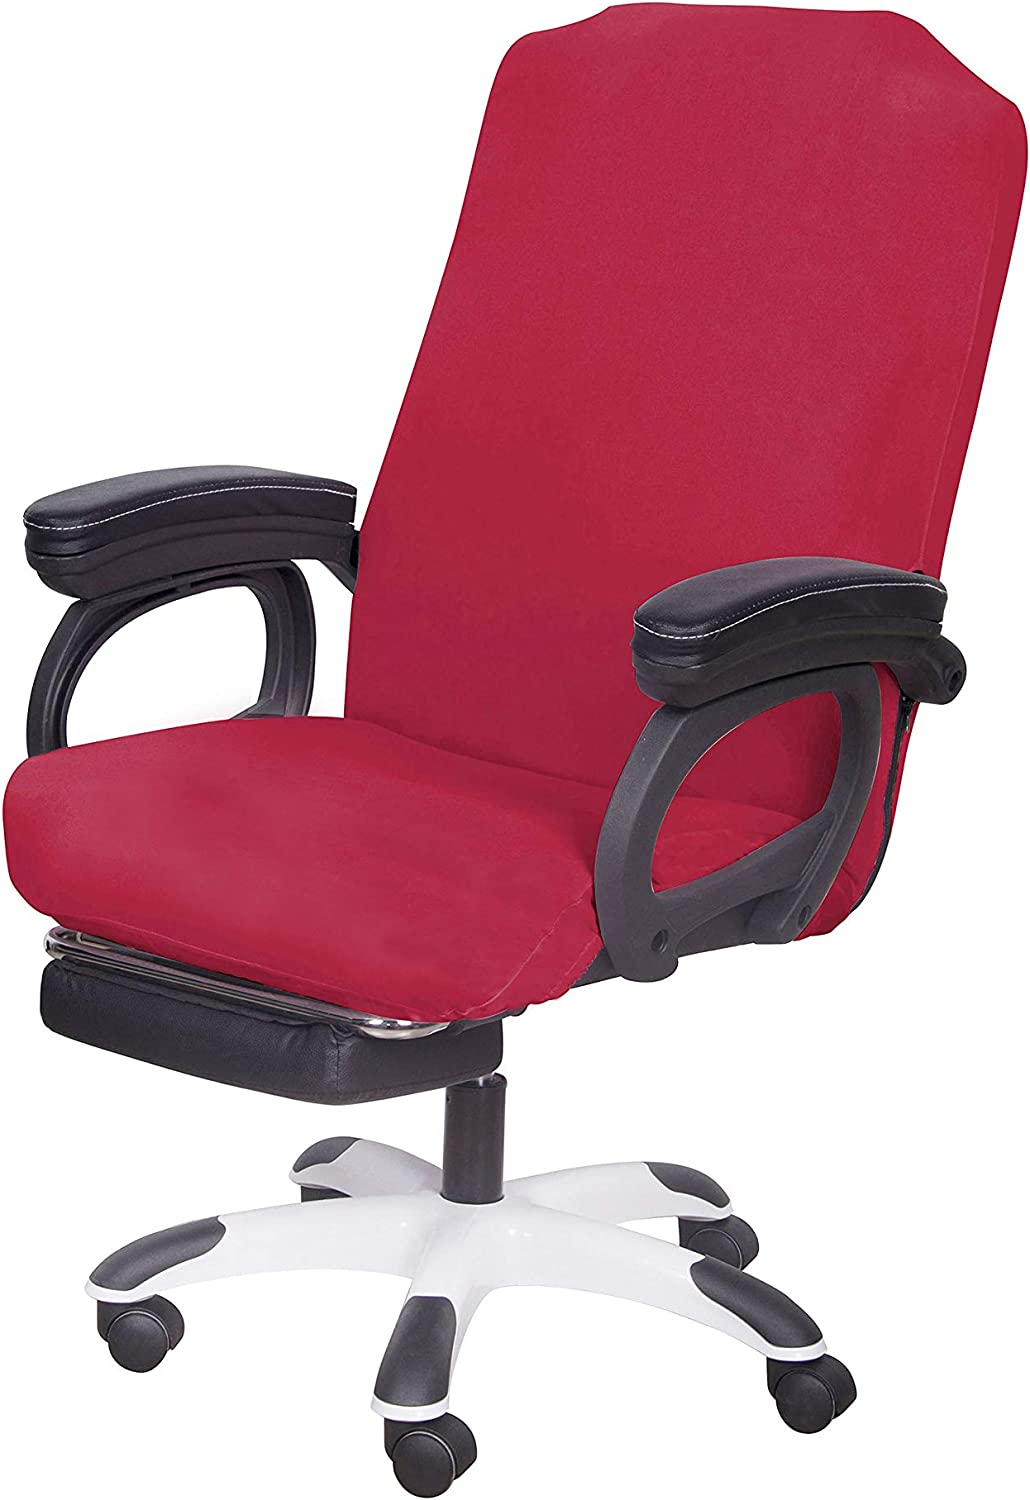 SARAFLORA Red Office Chair Covers Stretch Washable Computer Chair Slipcovers for Universal Rotating Boss Chair Middle Size